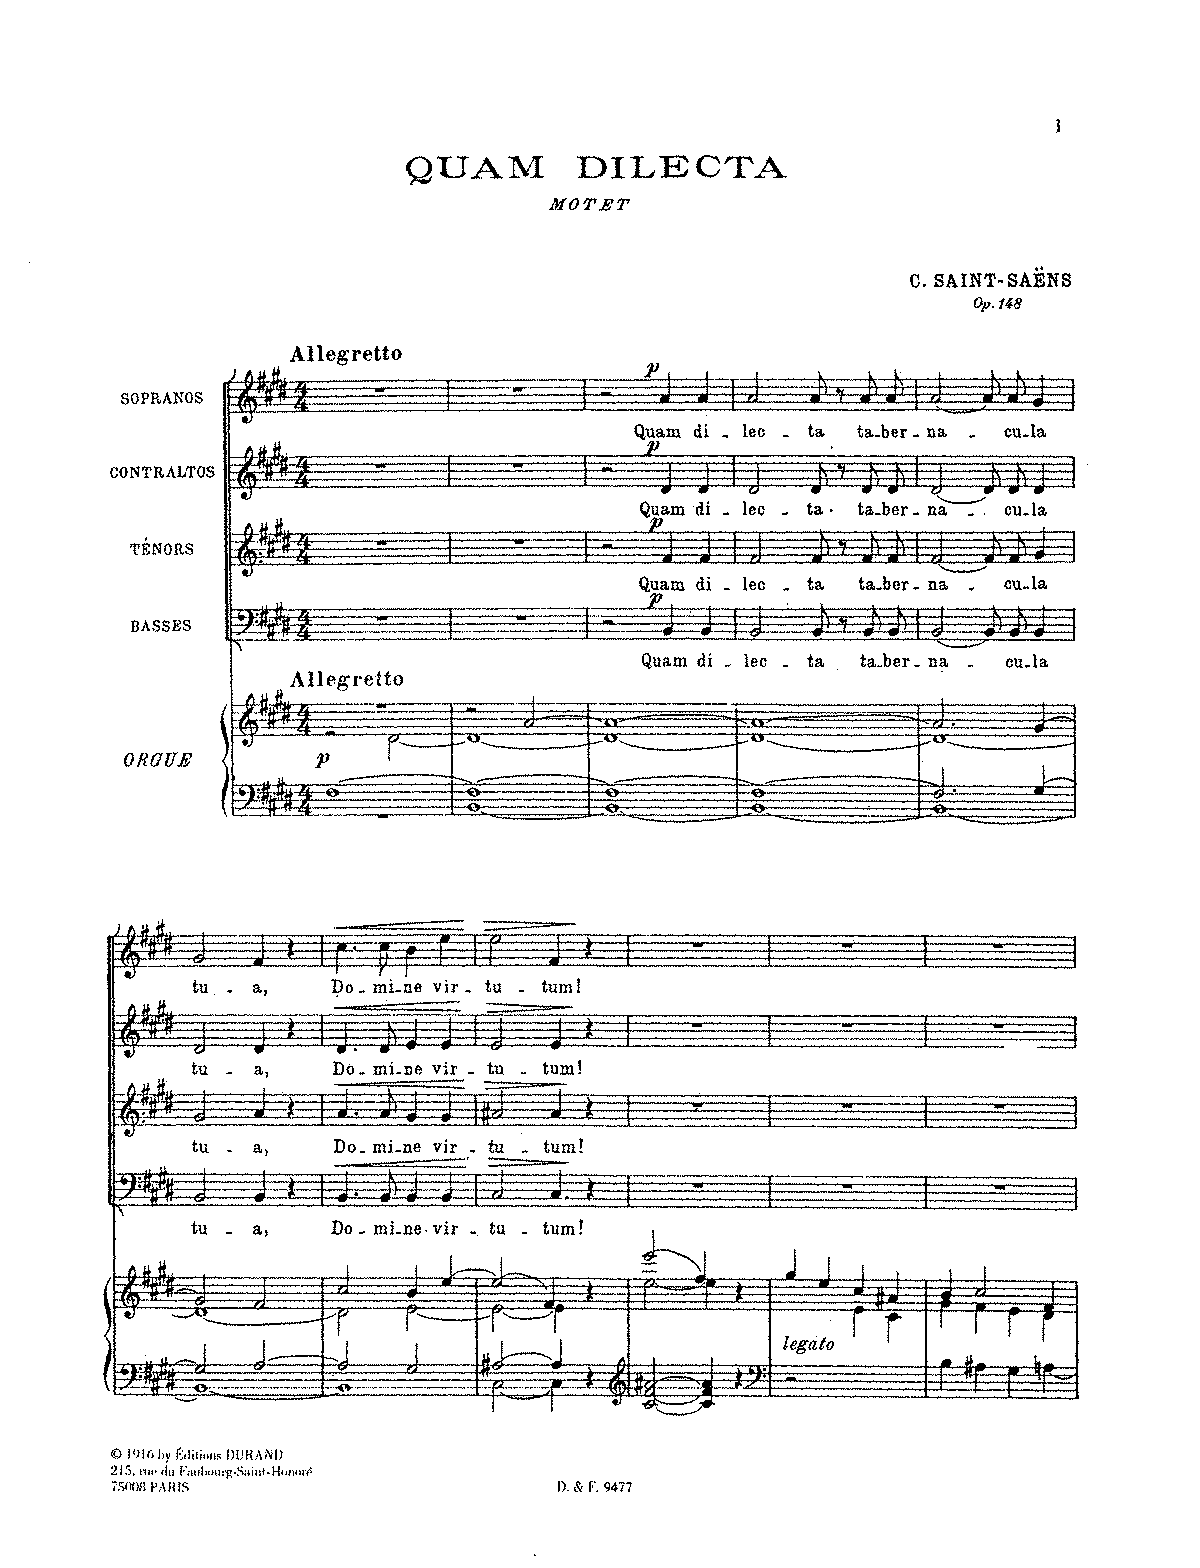 PMLP89459-Saint-Saëns - Quam dilecta, Op. 148 (SATB and organ).pdf